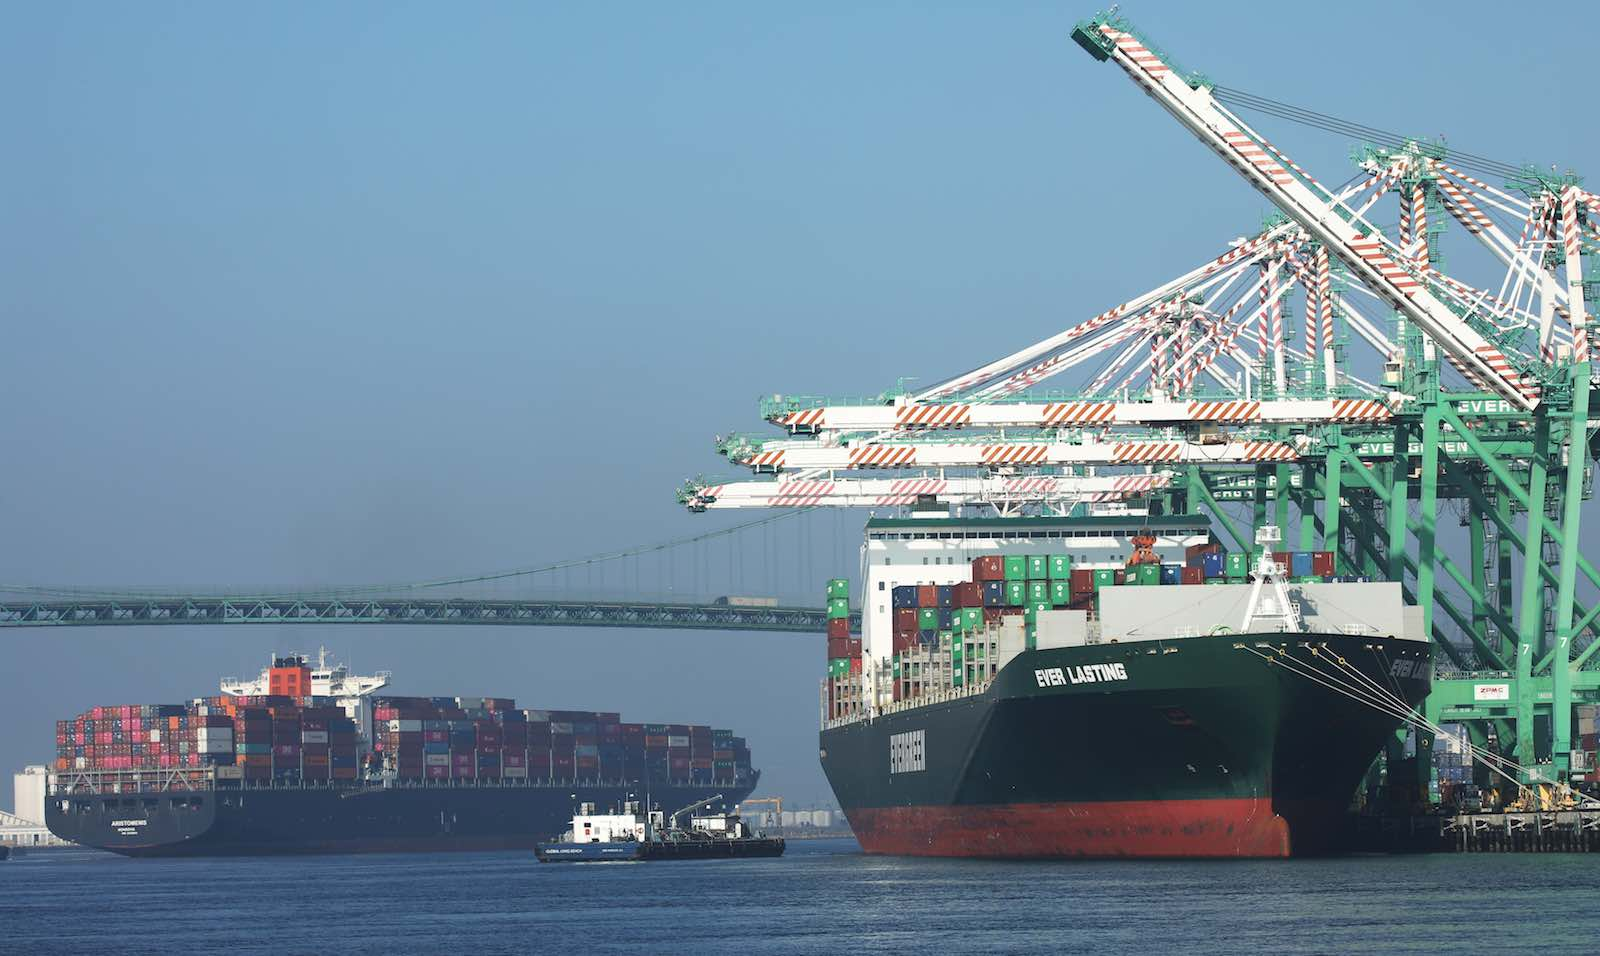 The Port of Los Angeles, the busiest container port in the US (Photo: Mario Tama/Getty Images)